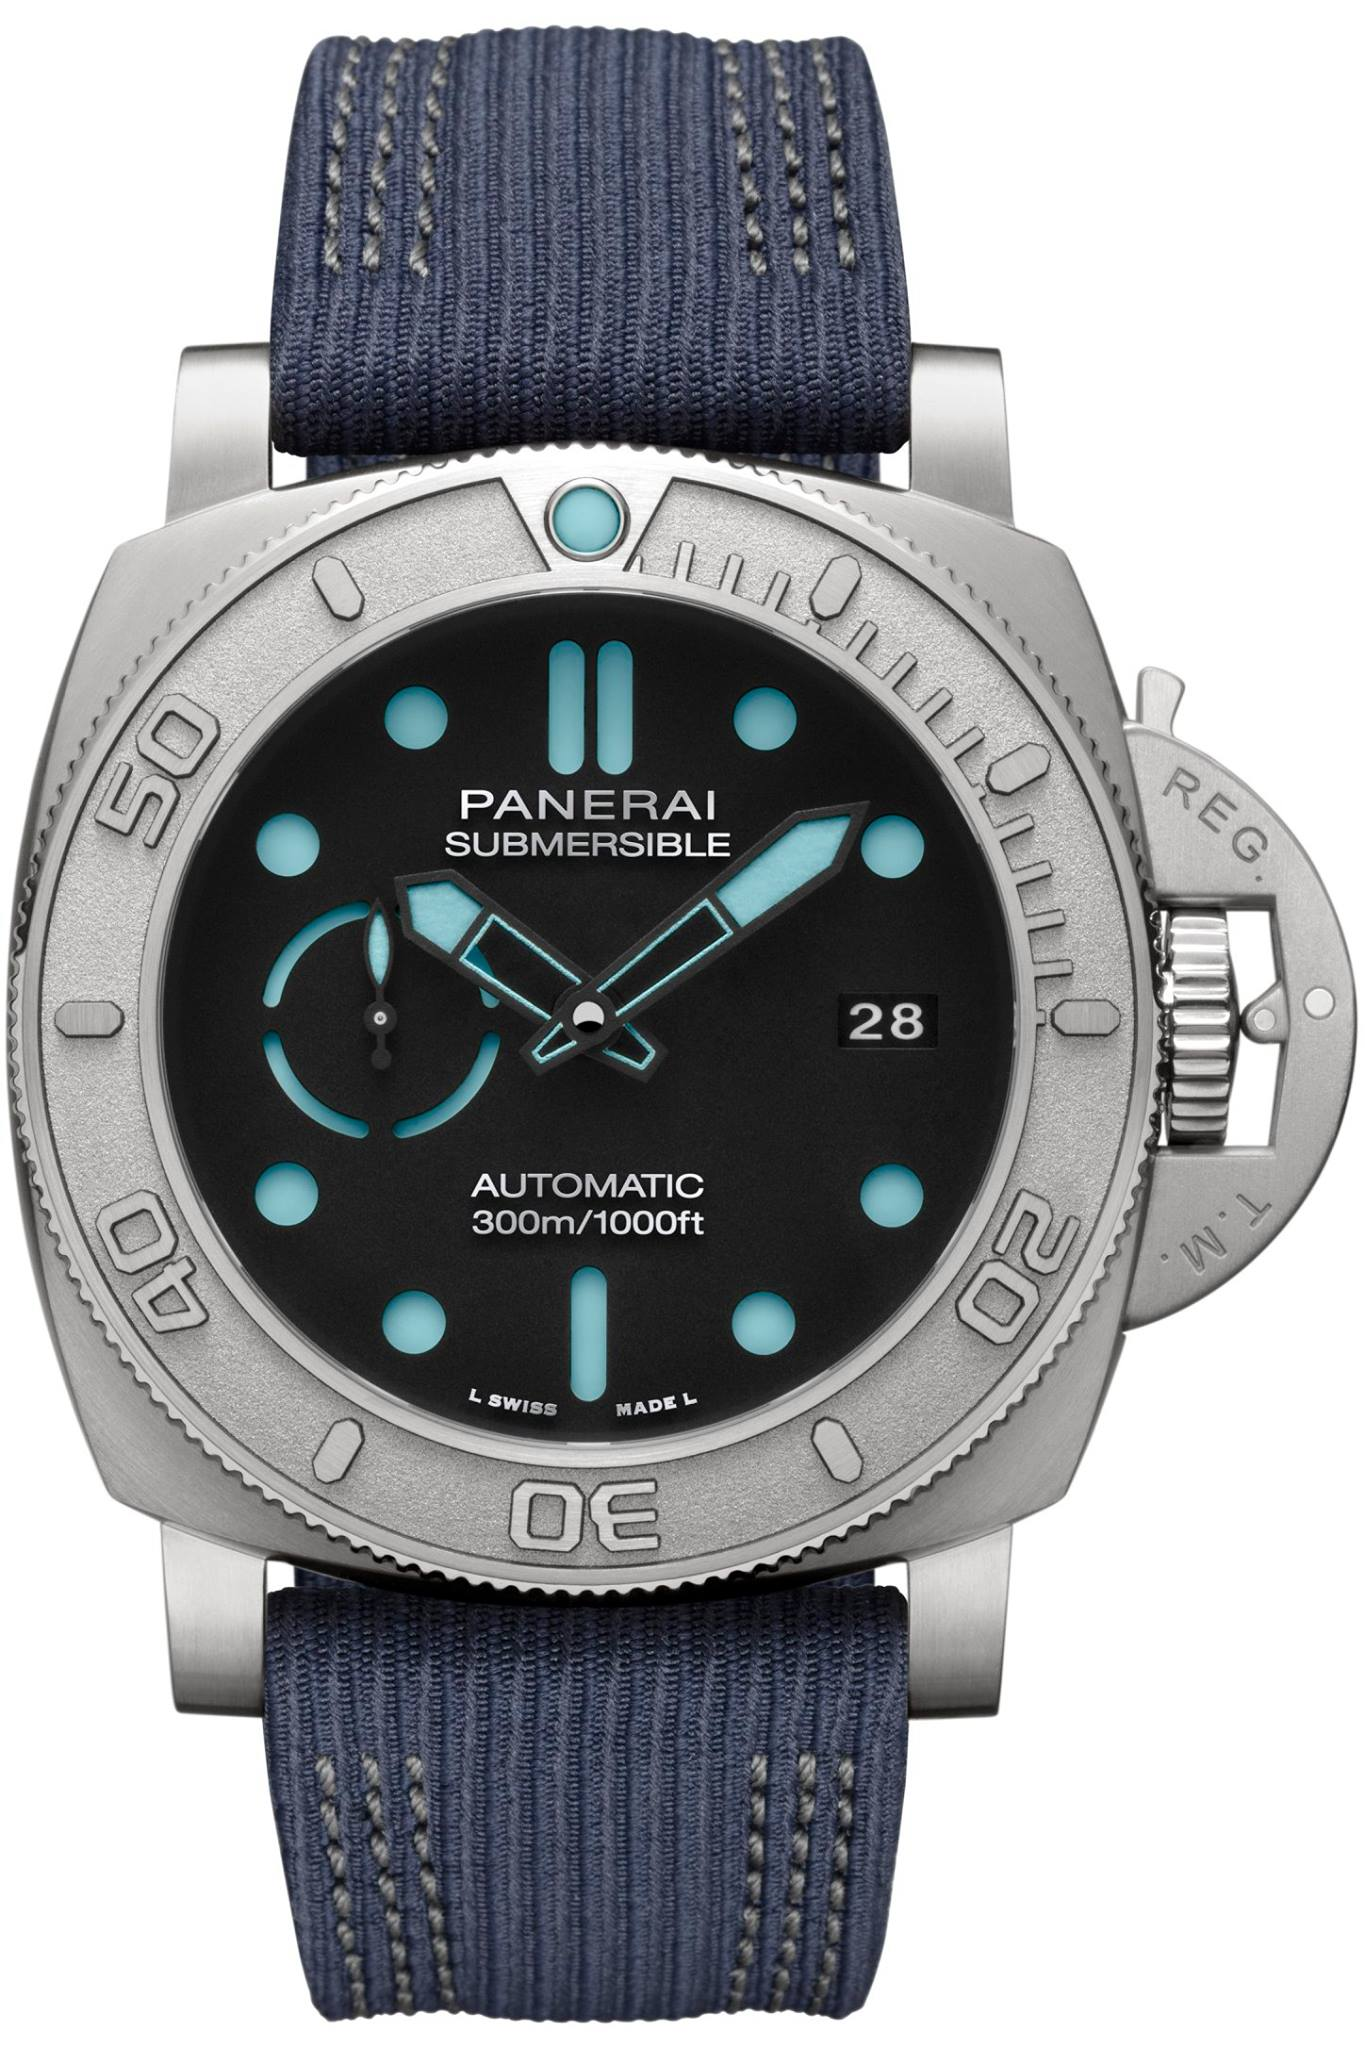 Panerai-Submersible-SIHH-2019-8